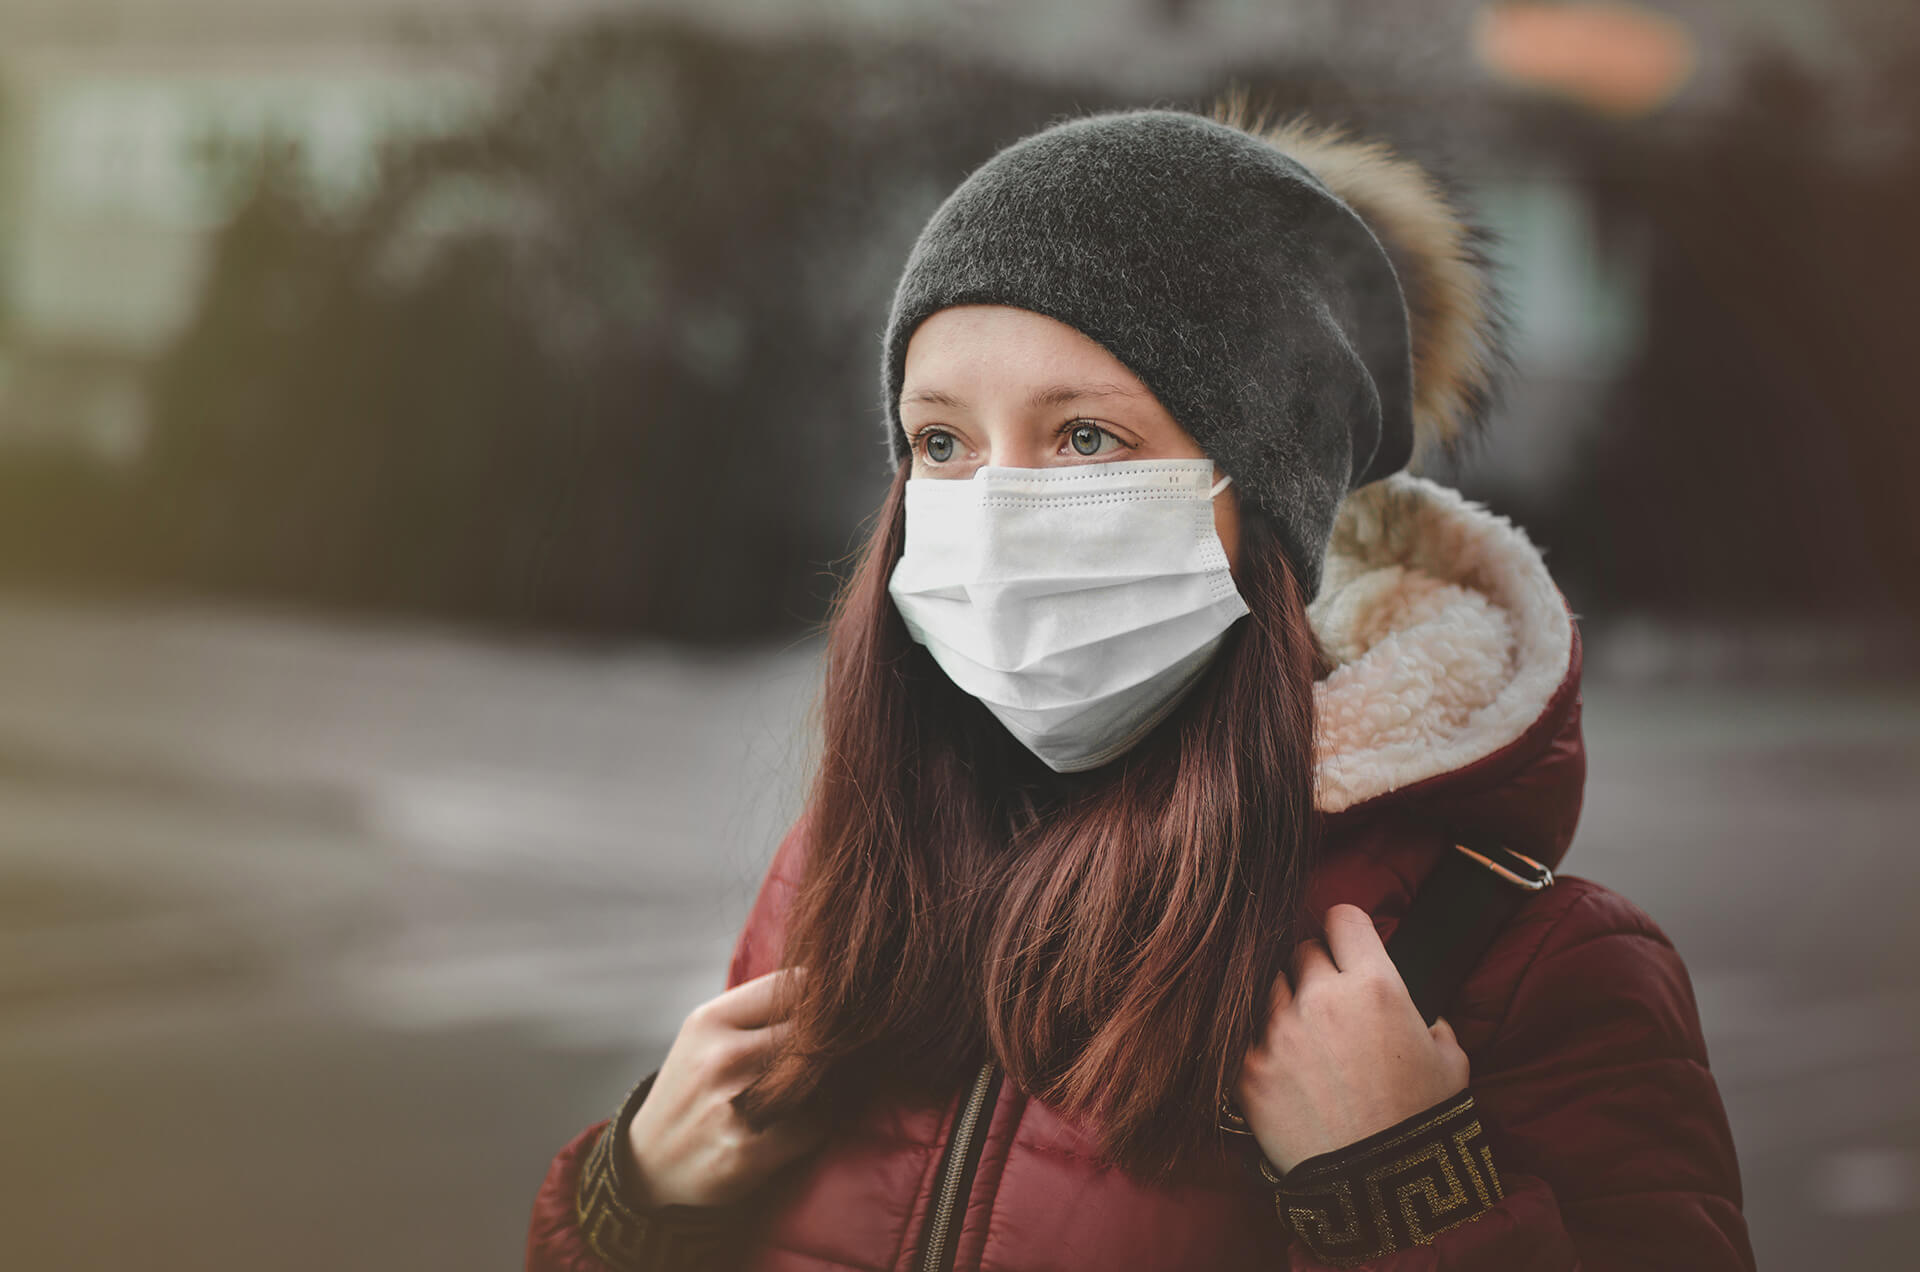 A comprehensive Buying Guide for Pollution Masks